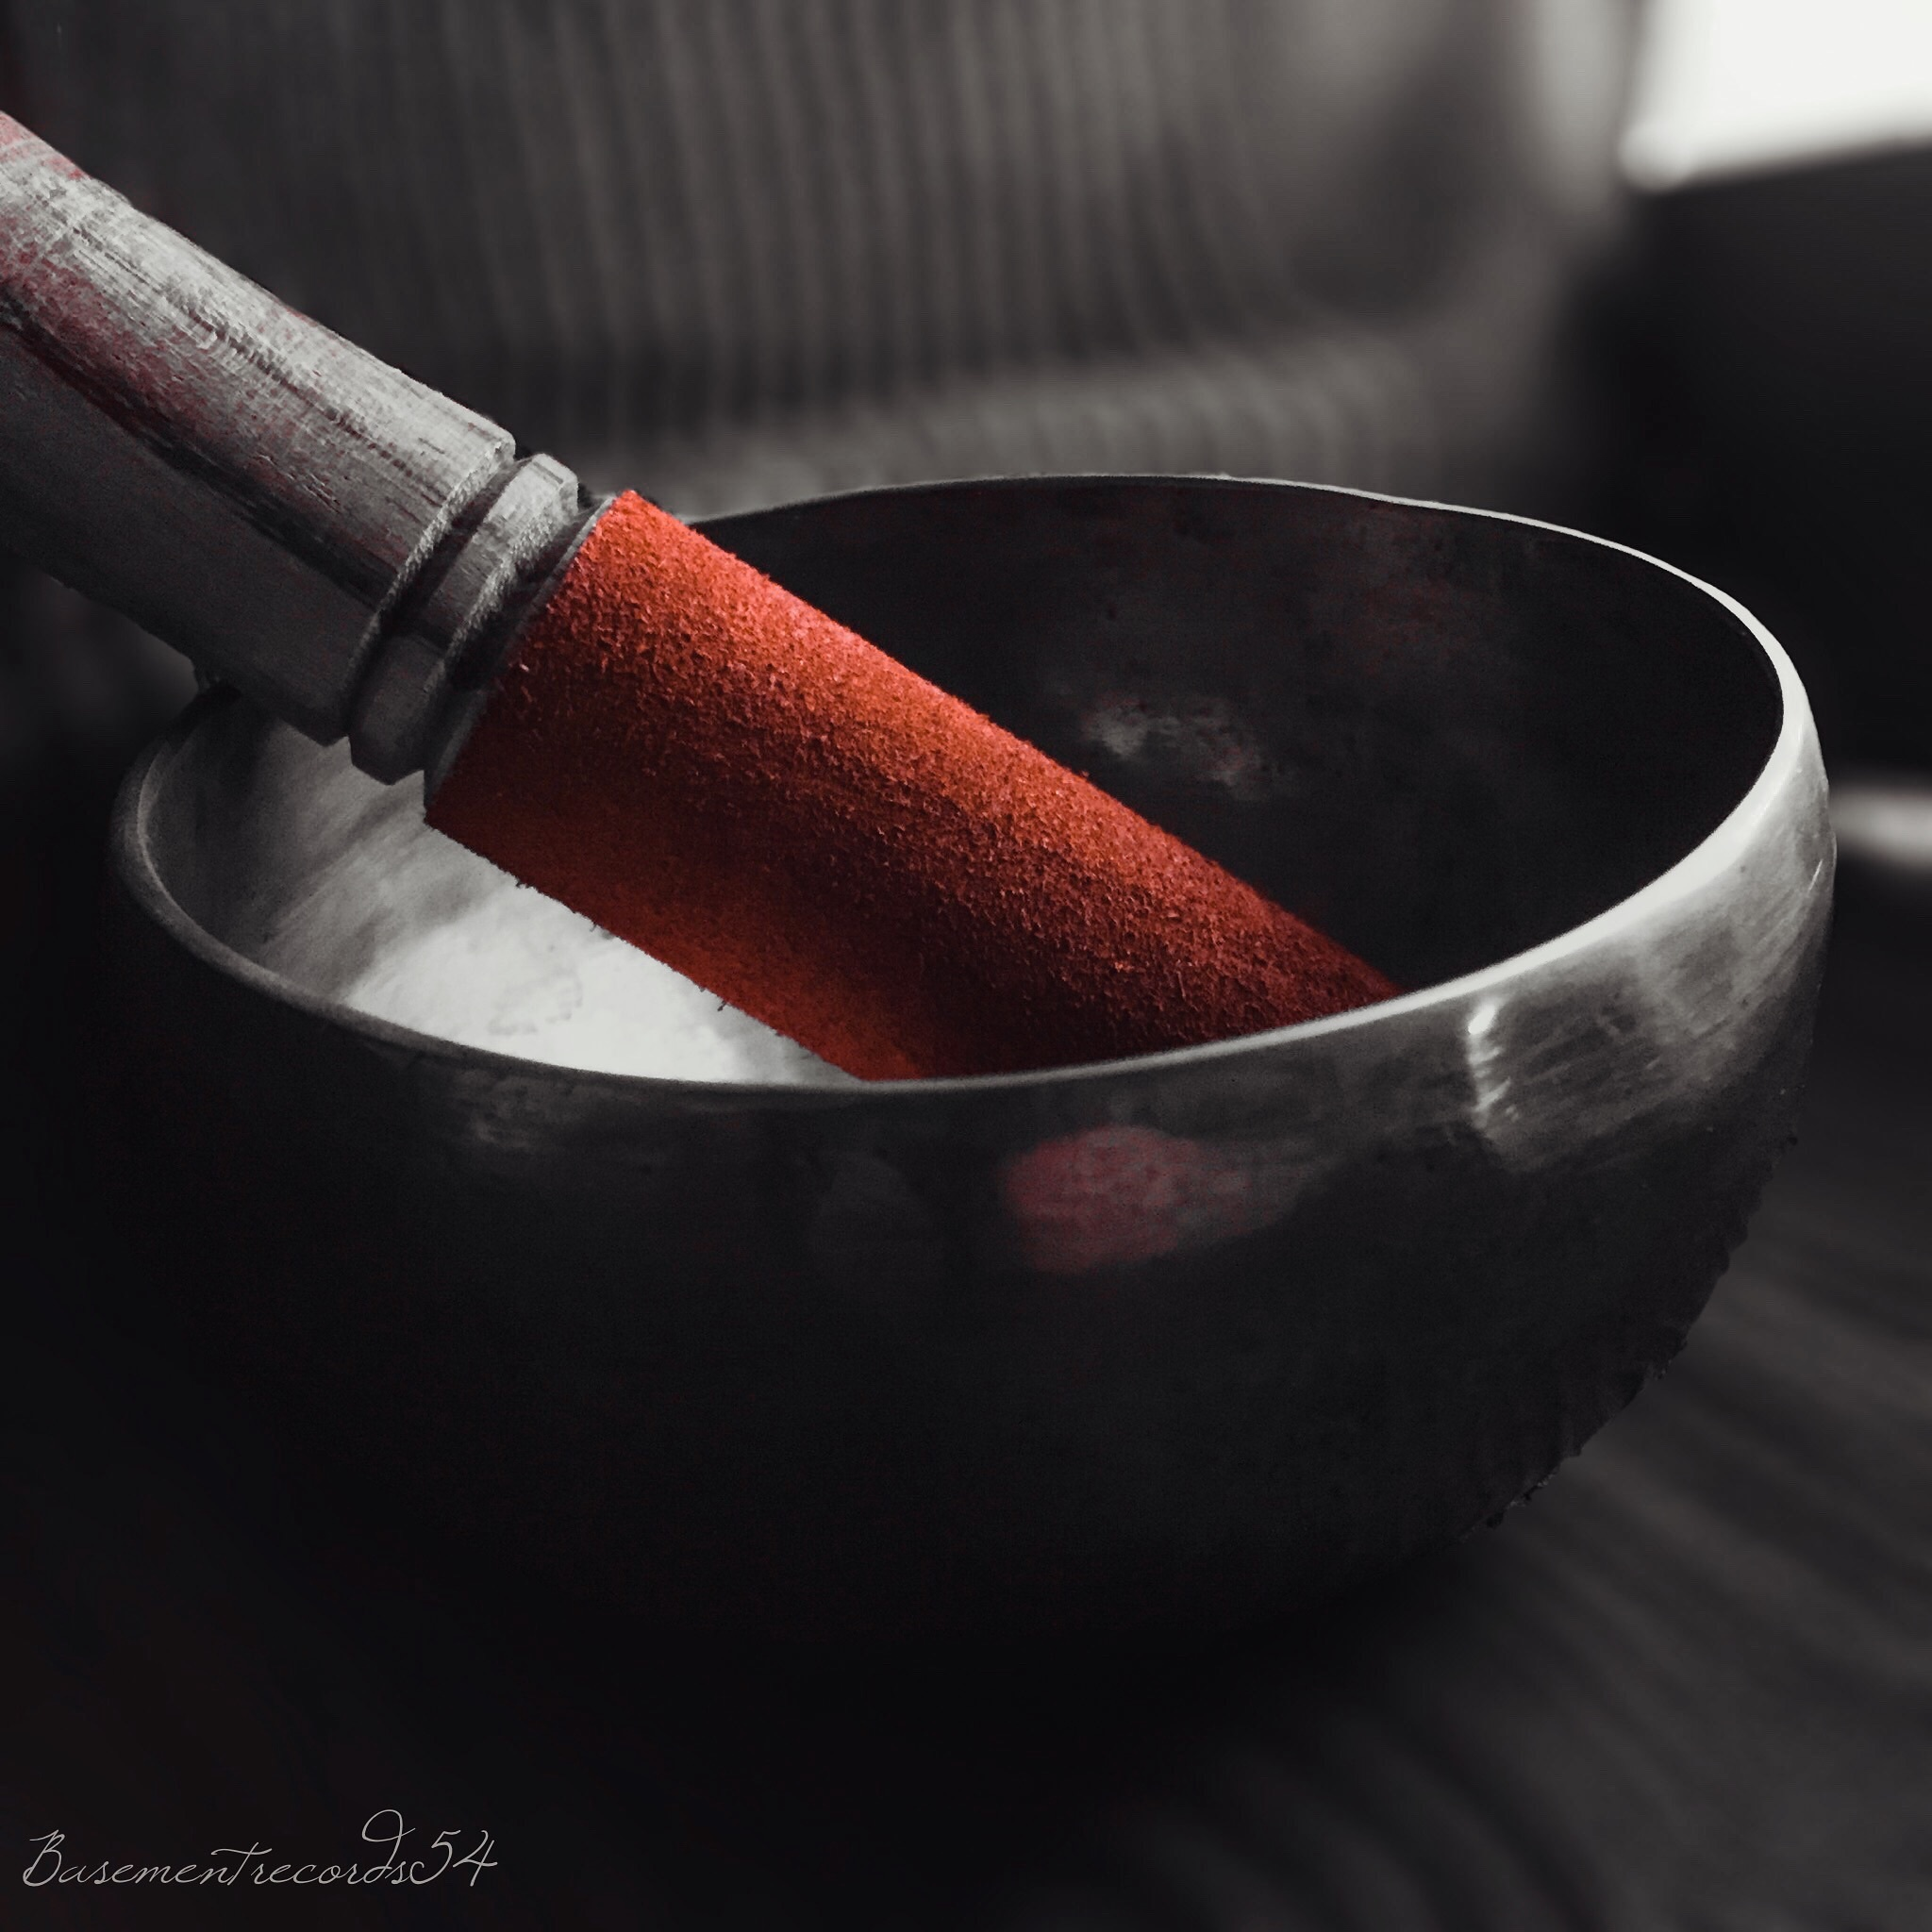 What are singing bowls? These sound really cool. I need one!